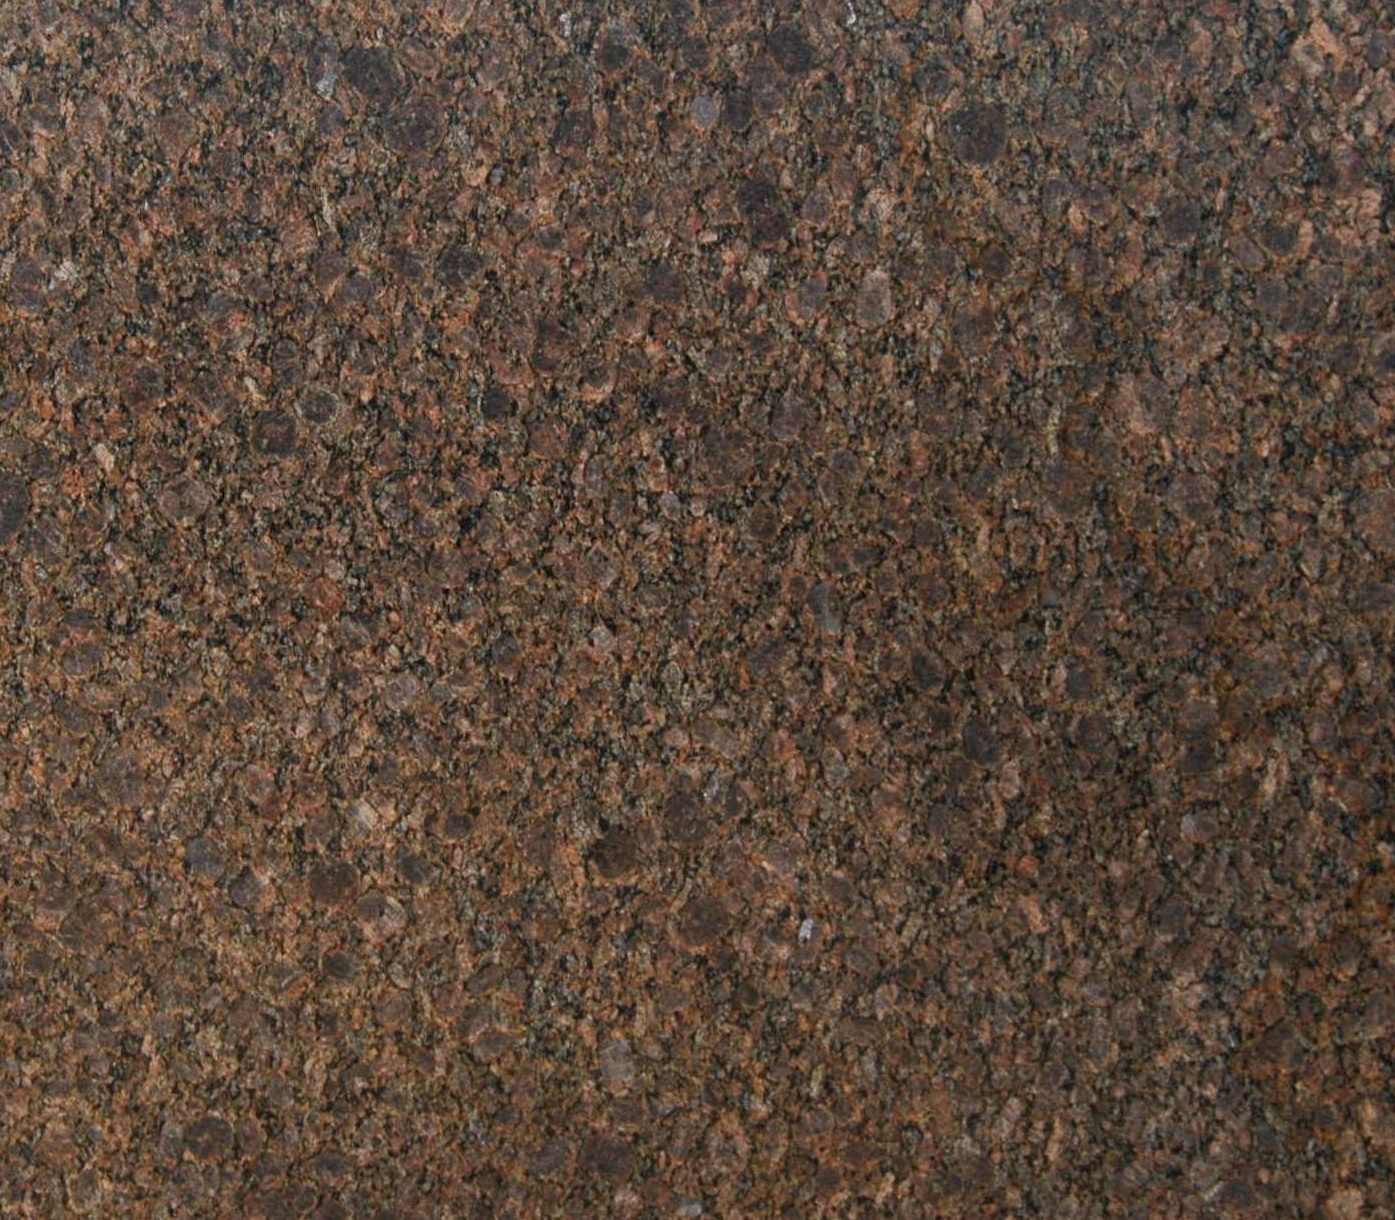 CASTOR BROWN GRANITE SLAB 30MM